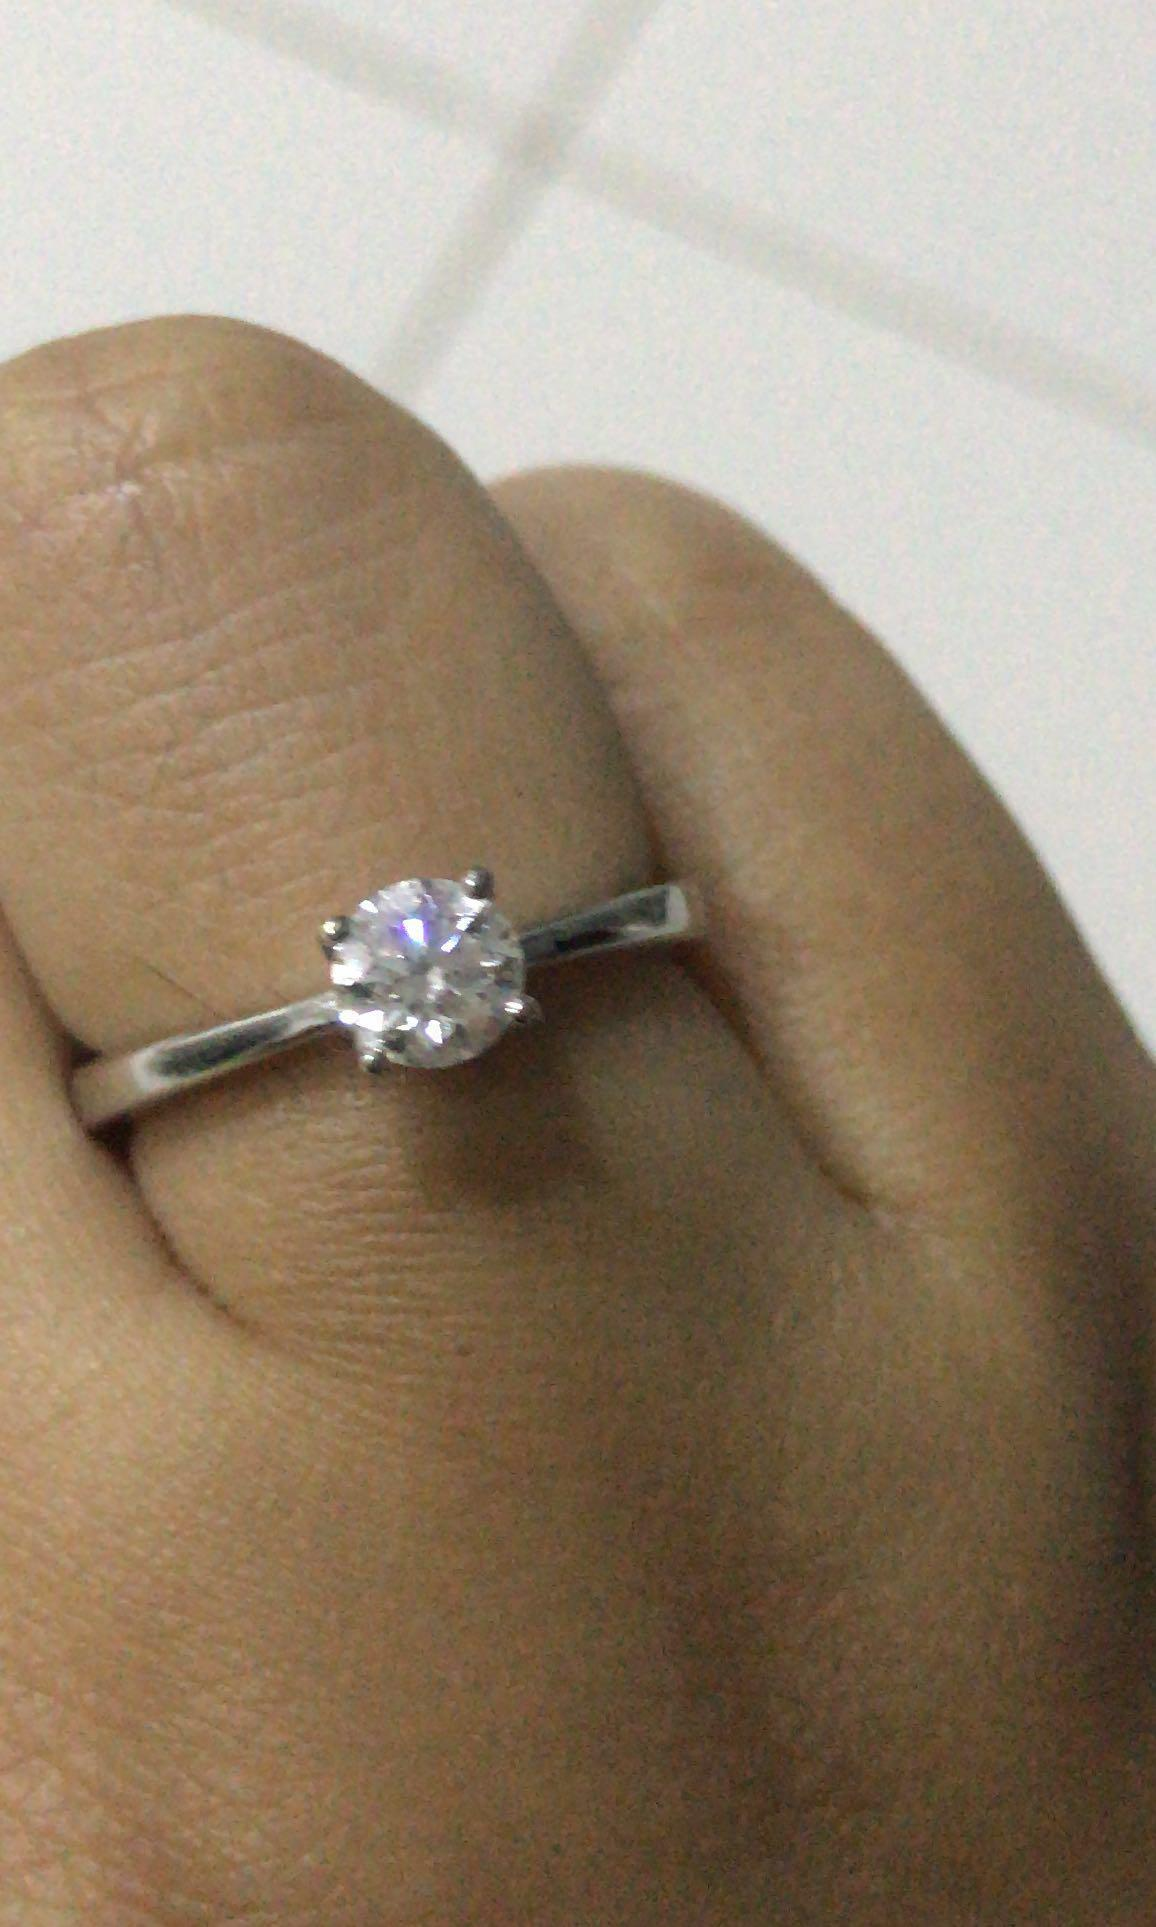 fb34992e2a667 Lee Hwa D Color diamond ring, Women's Fashion, Jewellery on Carousell